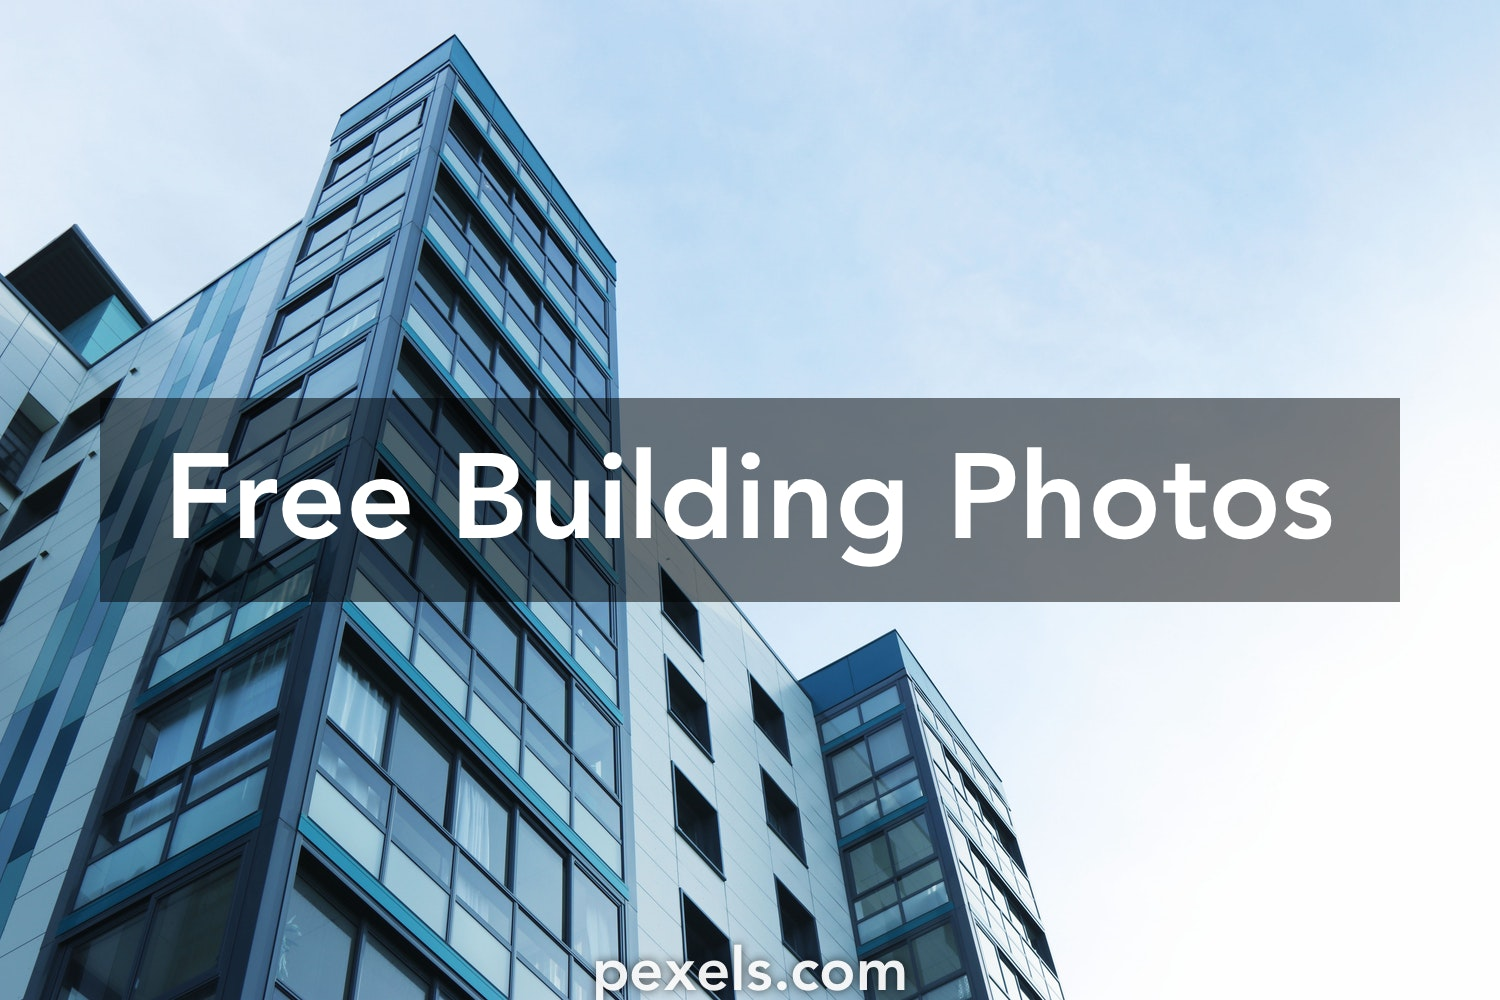 1000 amazing building photos pexels free stock photos for Build a house online free